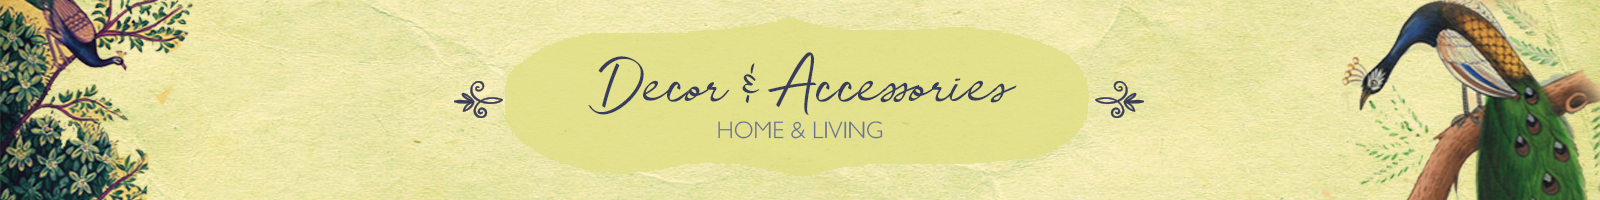 Authentic Handcrafted Decor & Accessories by The India Craft House